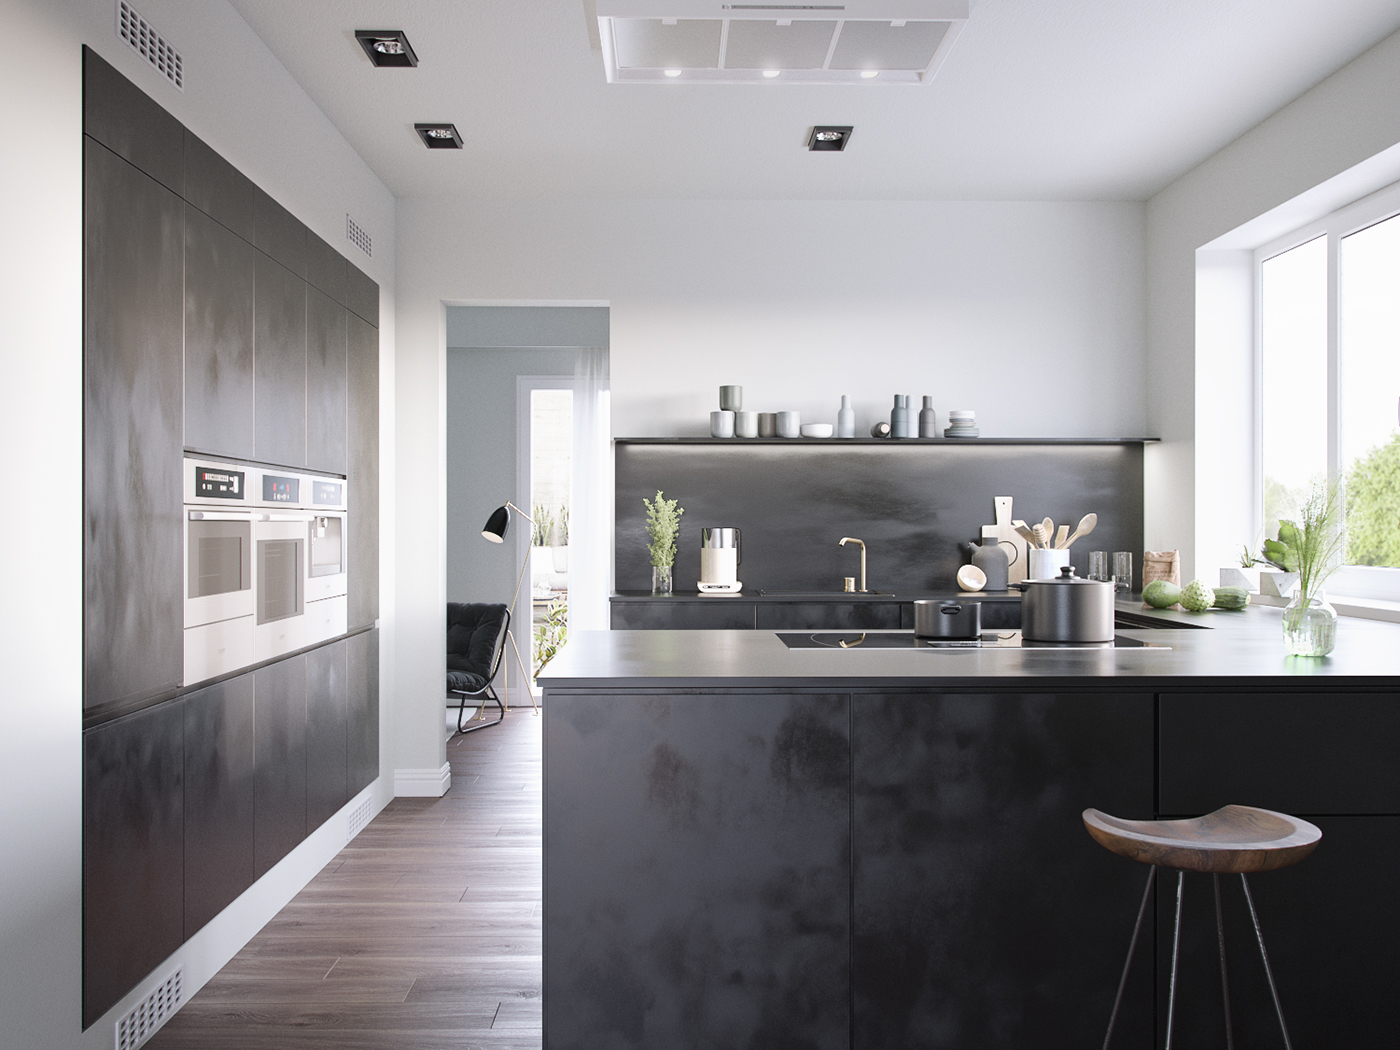 GJ-Kitchens-contemporary-10-20180815235837183